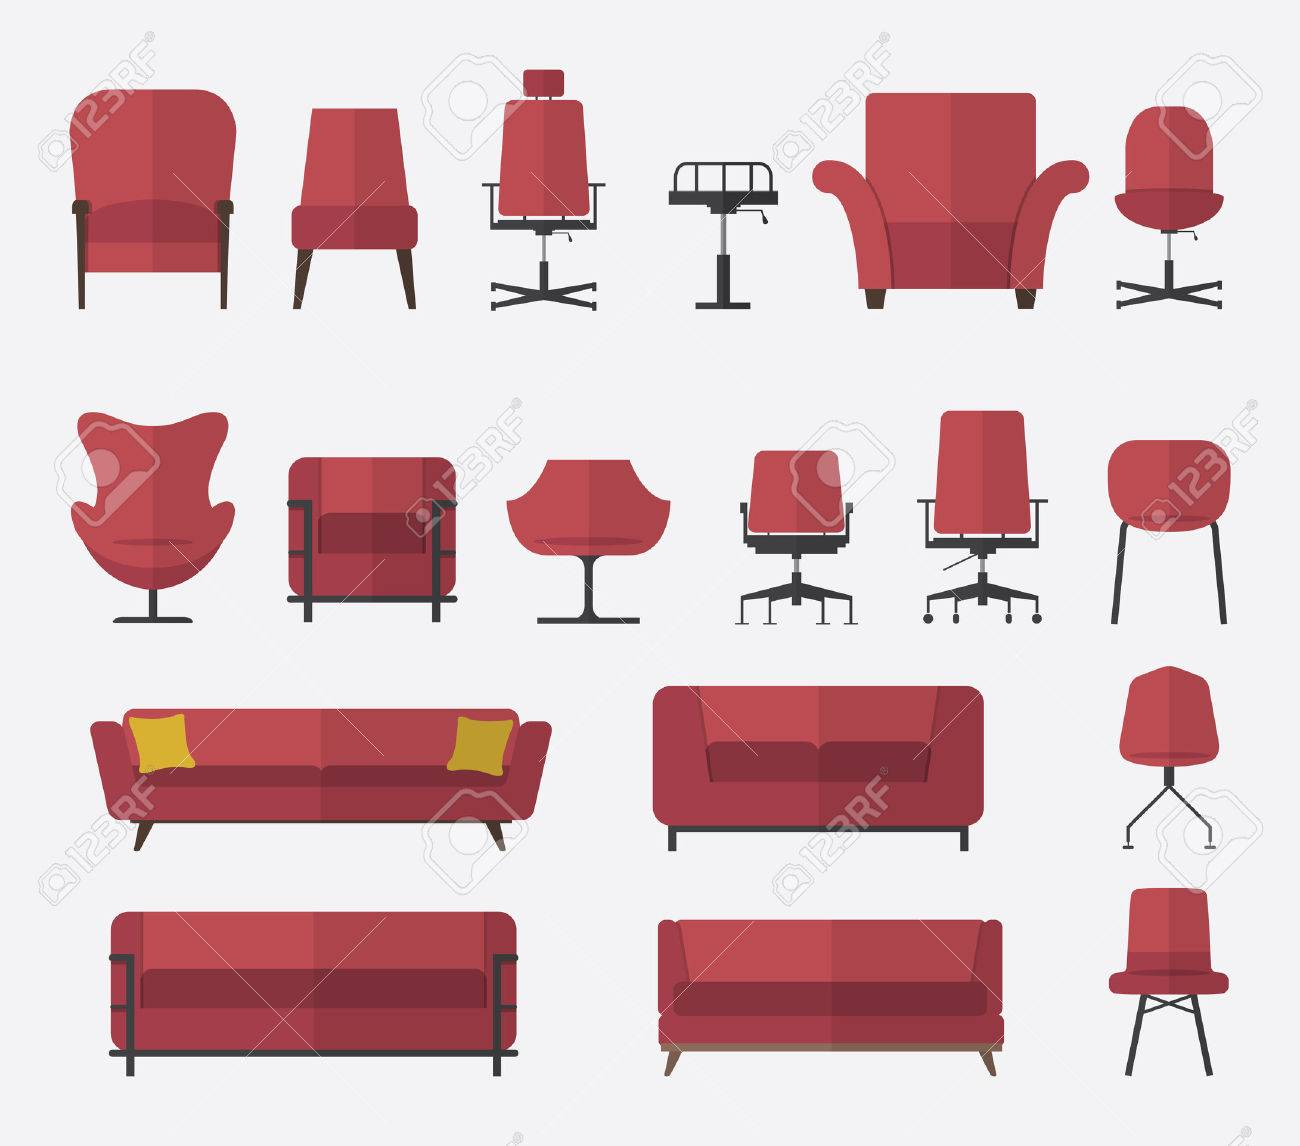 Flat design icon set of chair and sofa in marsala color. Vector. Illustration. - 39074321